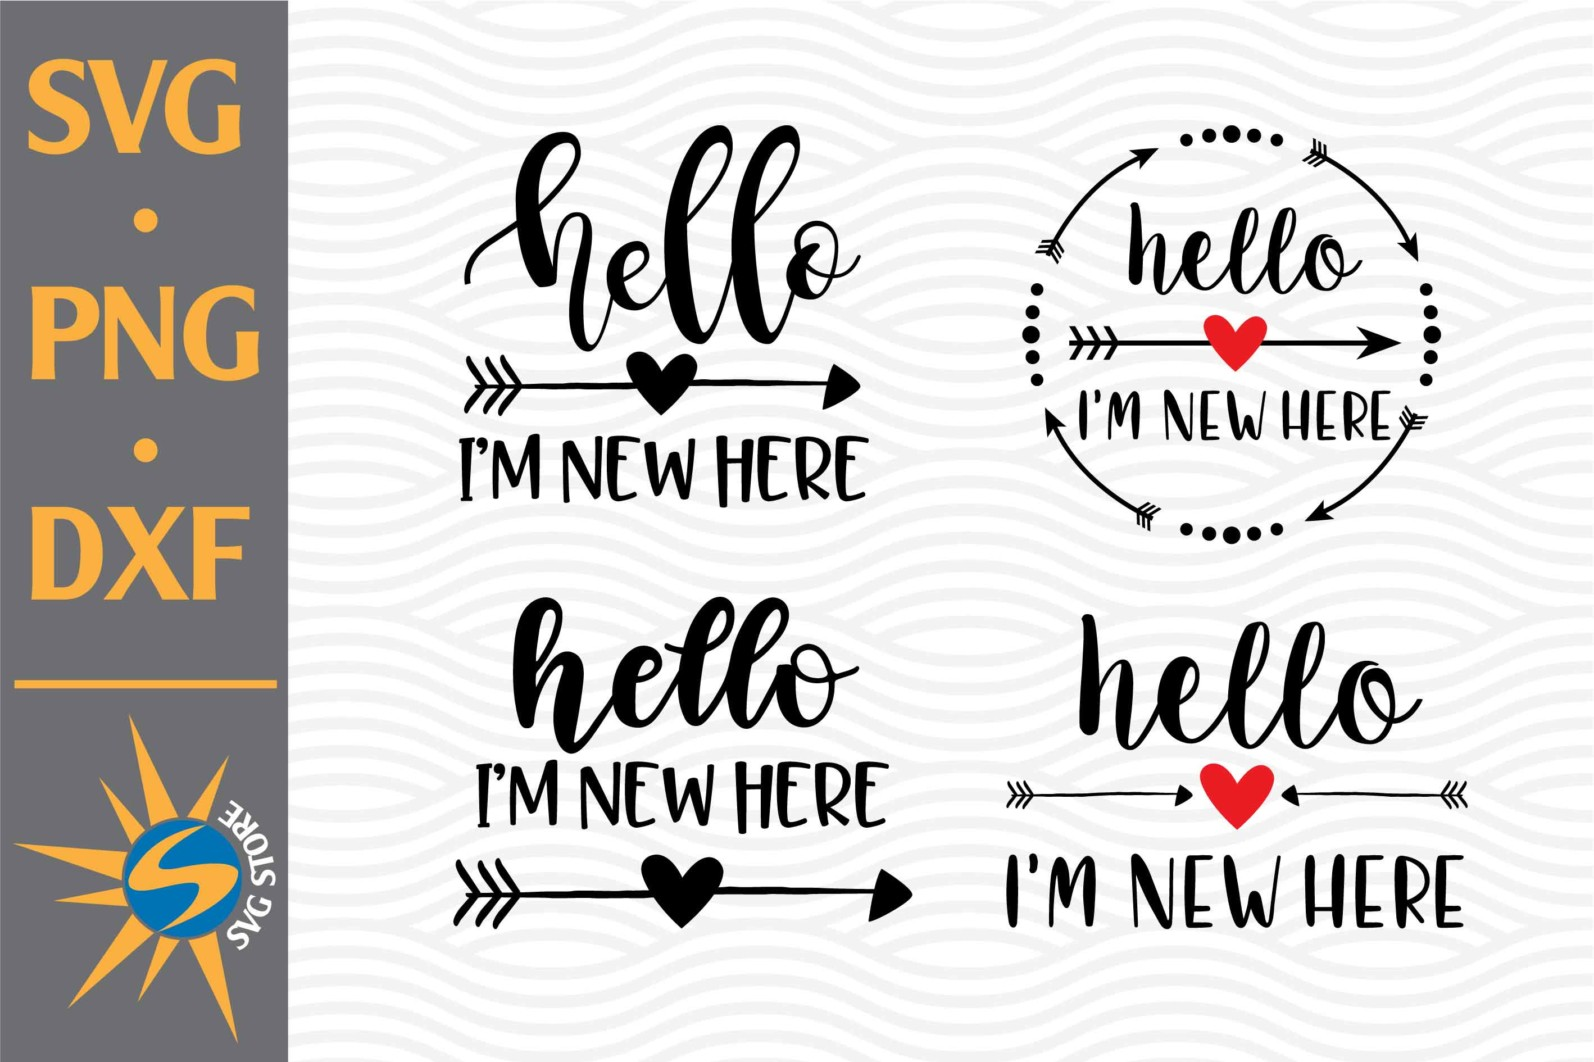 Hello I'm New Here SVG, PNG, DXF Digital Files Include - Hello Im New Here DB scaled -